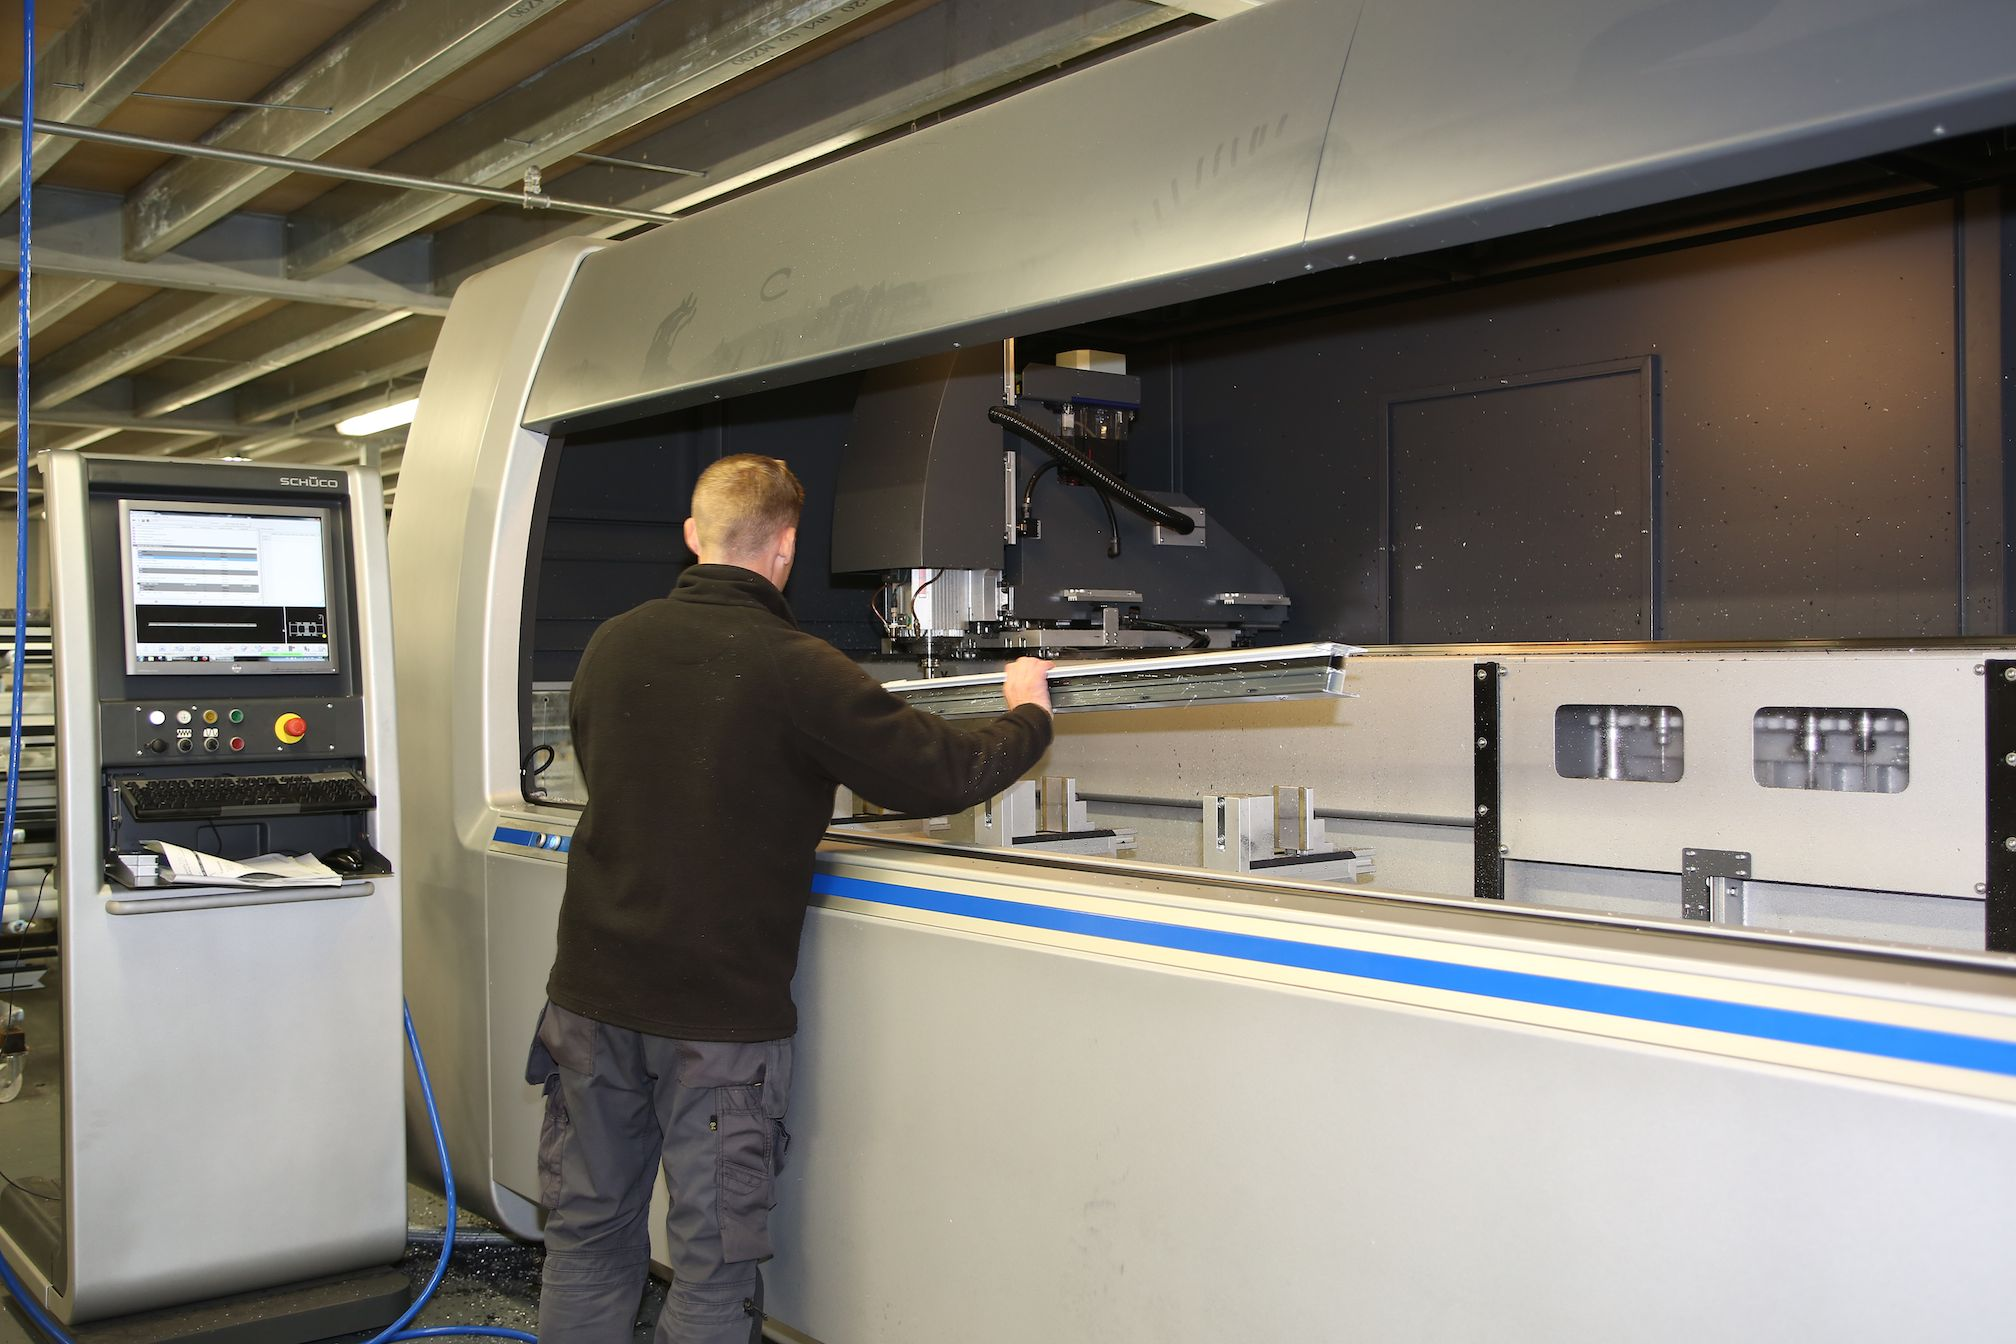 LogiKal - BMA300 BM Aluminium is offering a new value package for CNC set ups